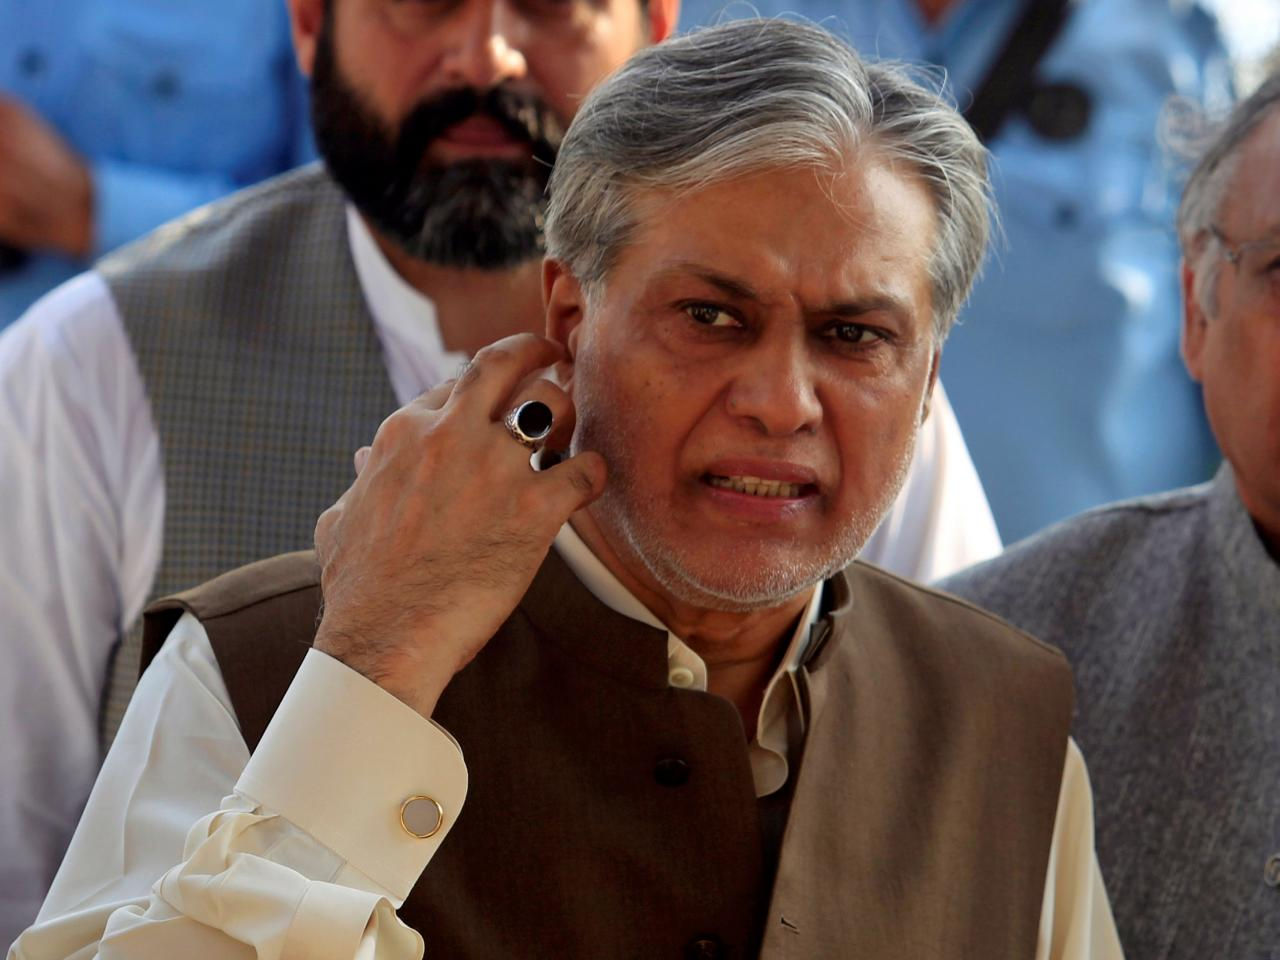 pakistans-finance-minister-ishaq-dar-is-seen-after-a-party-meeting-in-islamabad-2-2-2-2-2-3-4-2-2-3-2-2-2-2-2-2